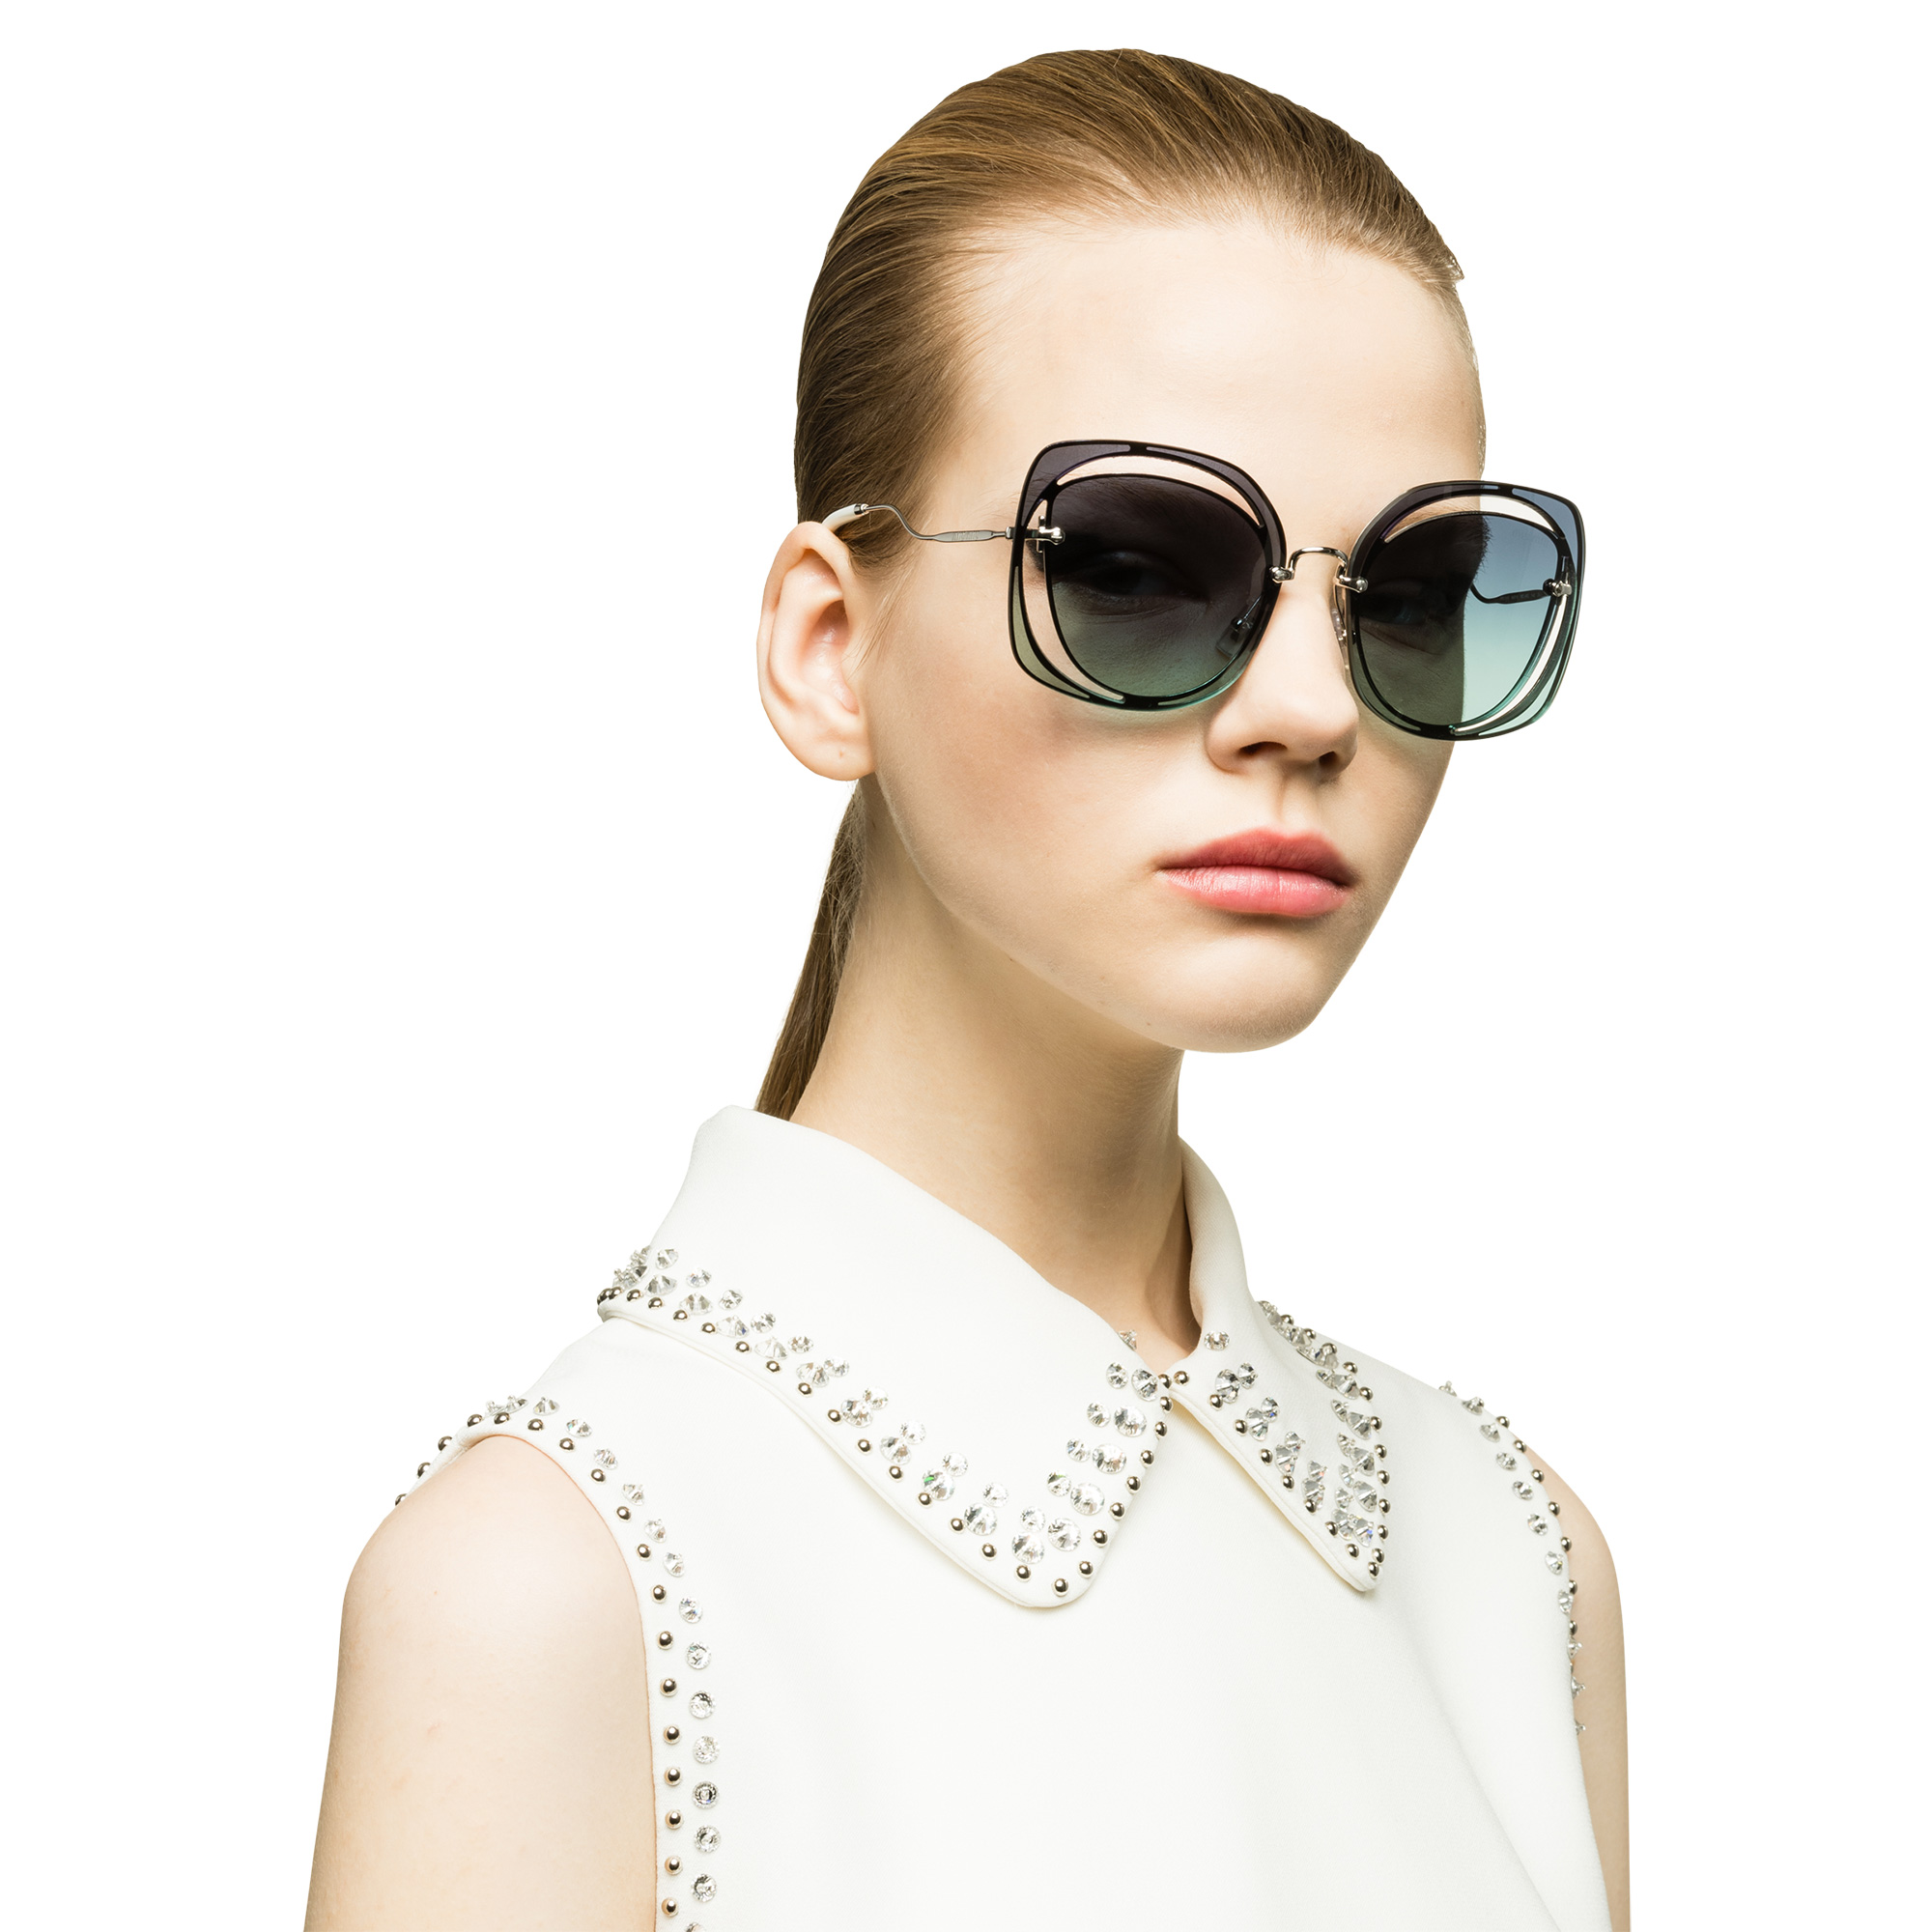 c07247ff4367 Miu Miu Scénique cut-out eyewear | MiuMiu